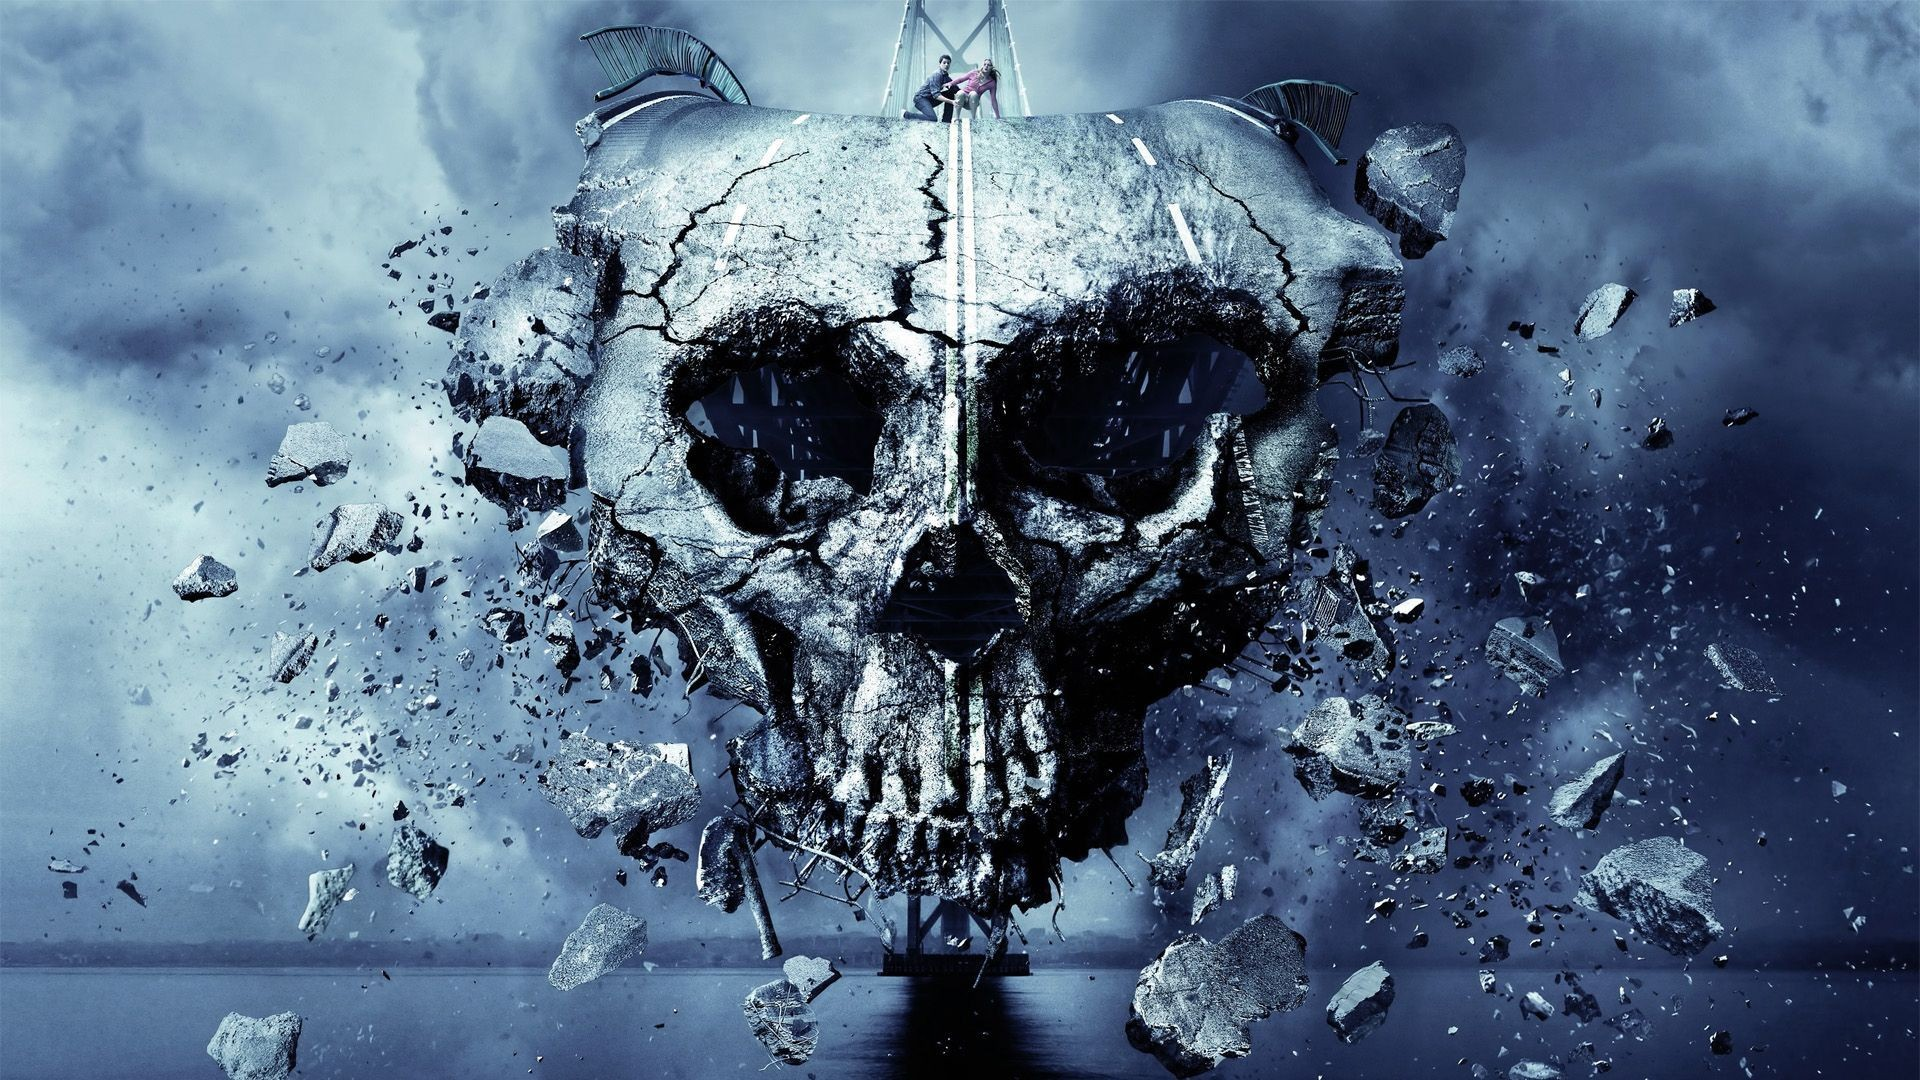 horror movies wallpapers 320x480 mobile - photo #17